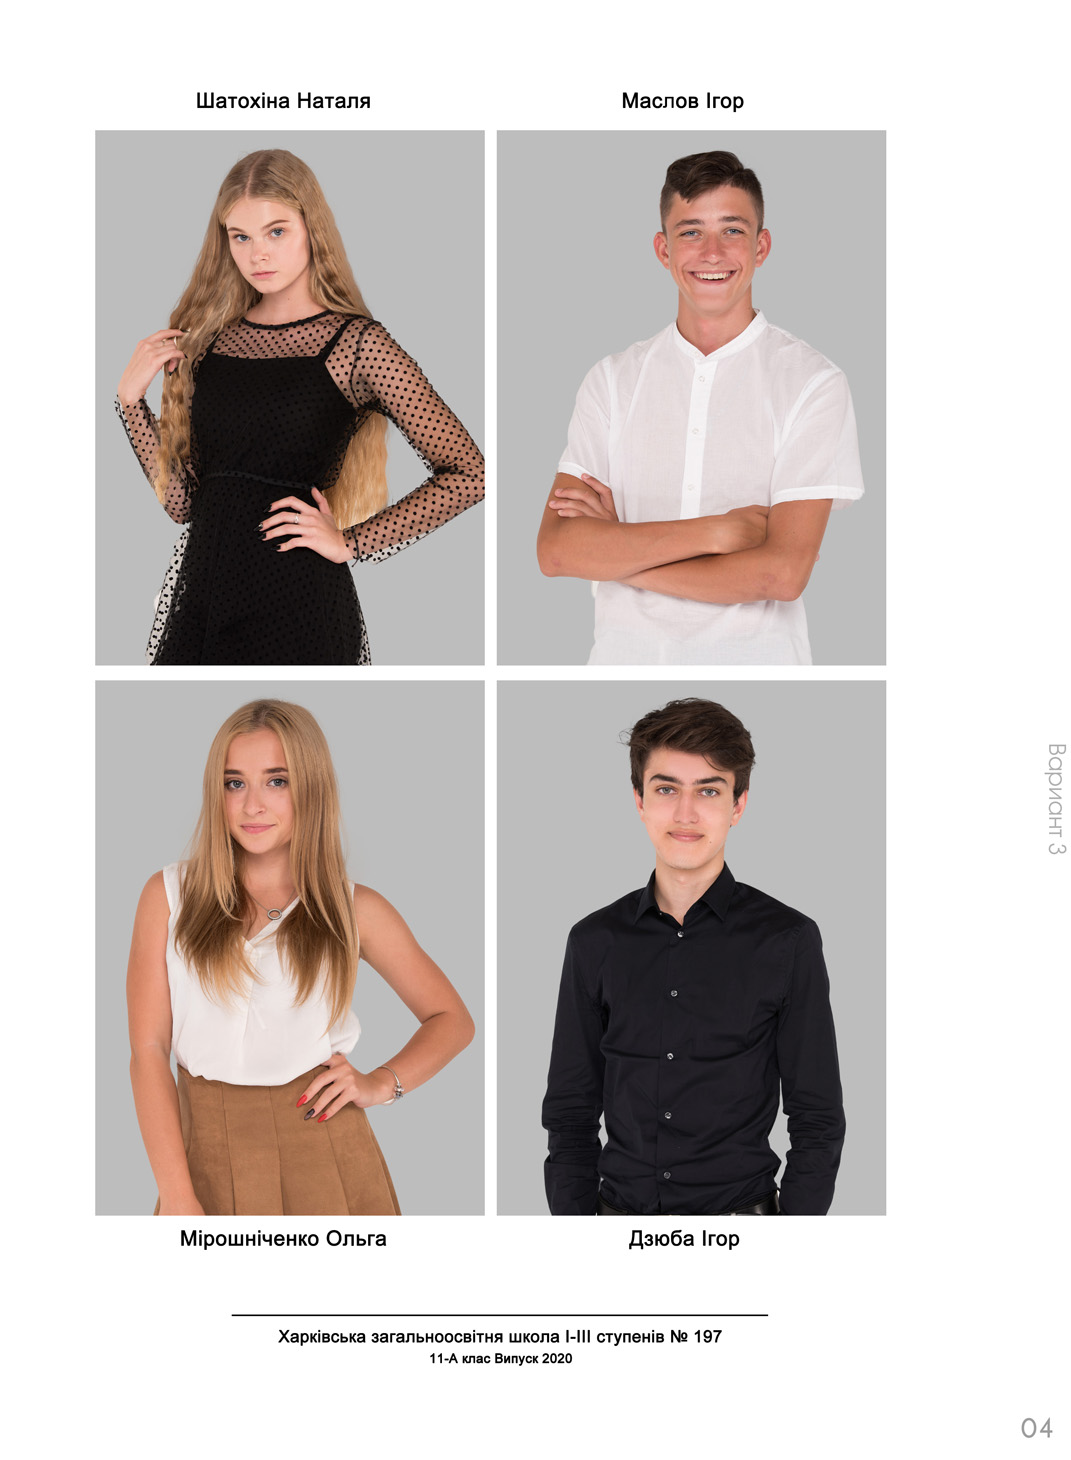 https://school-photo.com.ua/wp-content/uploads/2019/09/04-copy.jpg